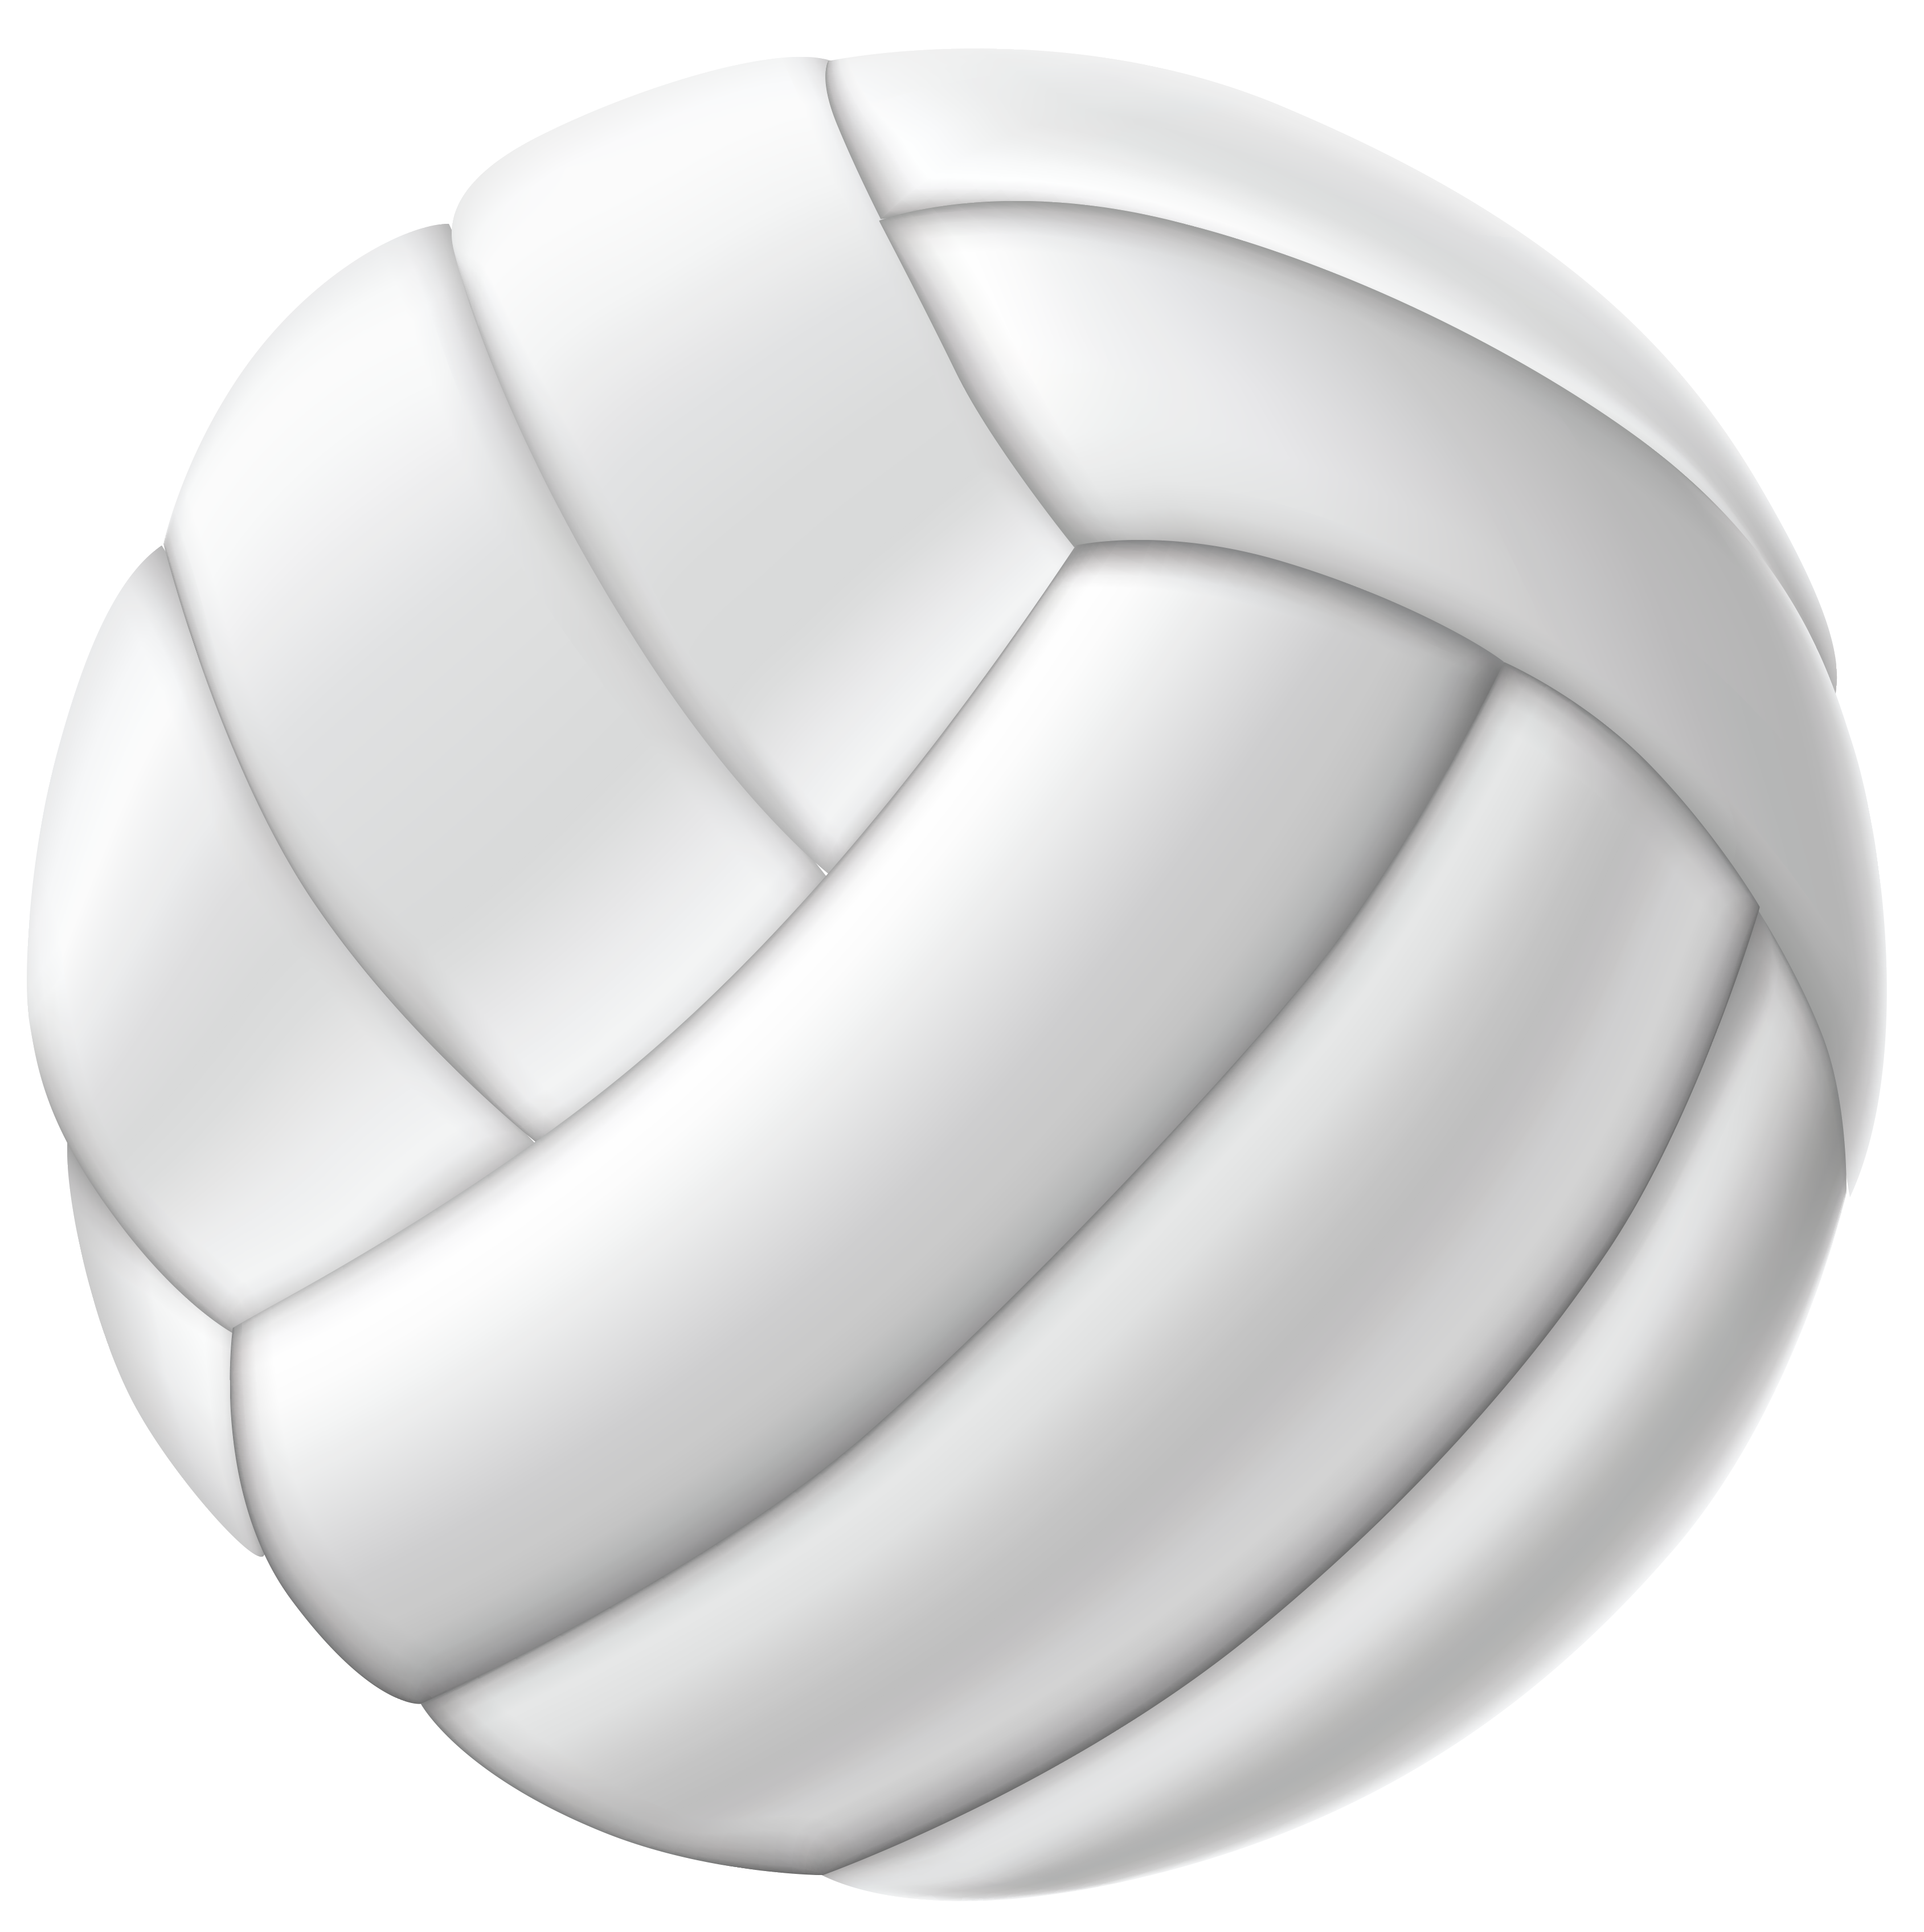 Volleyball Png Image Volleyball Png Images Clip Art